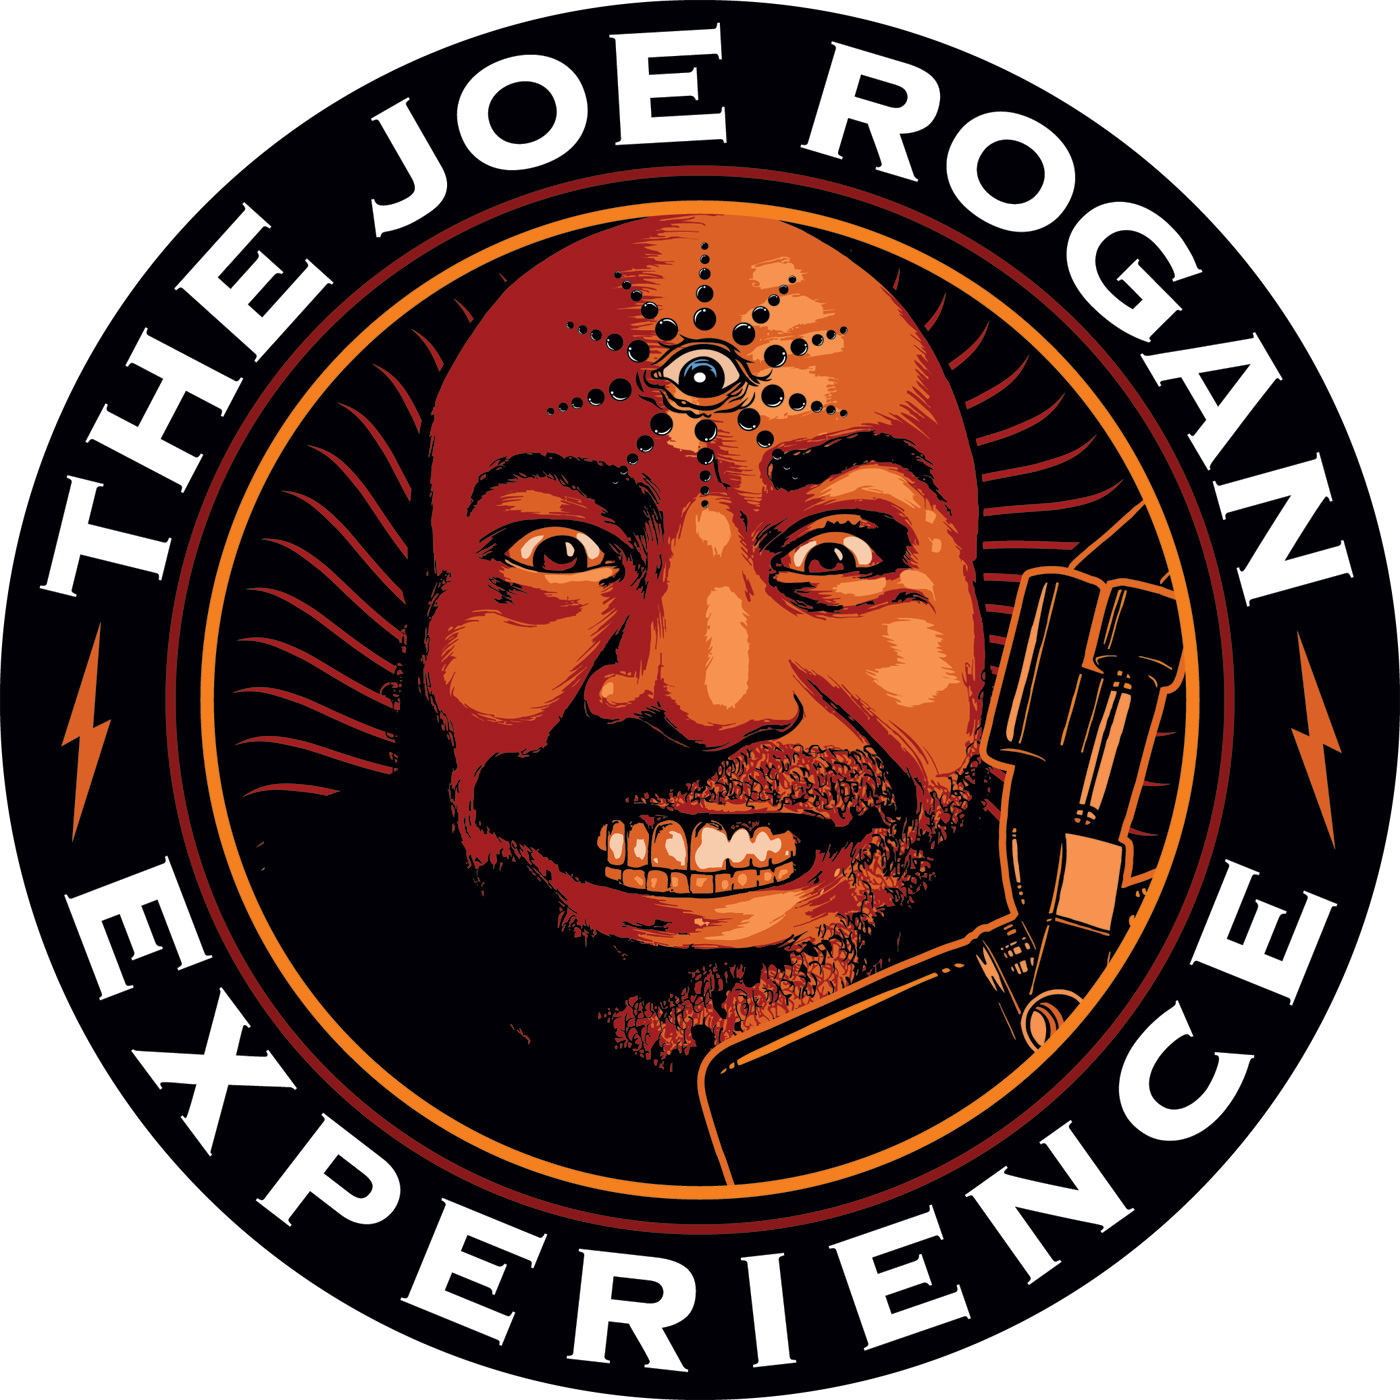 The Joe Rogan Experience #234 - Adam Scorgie, Brian Redban